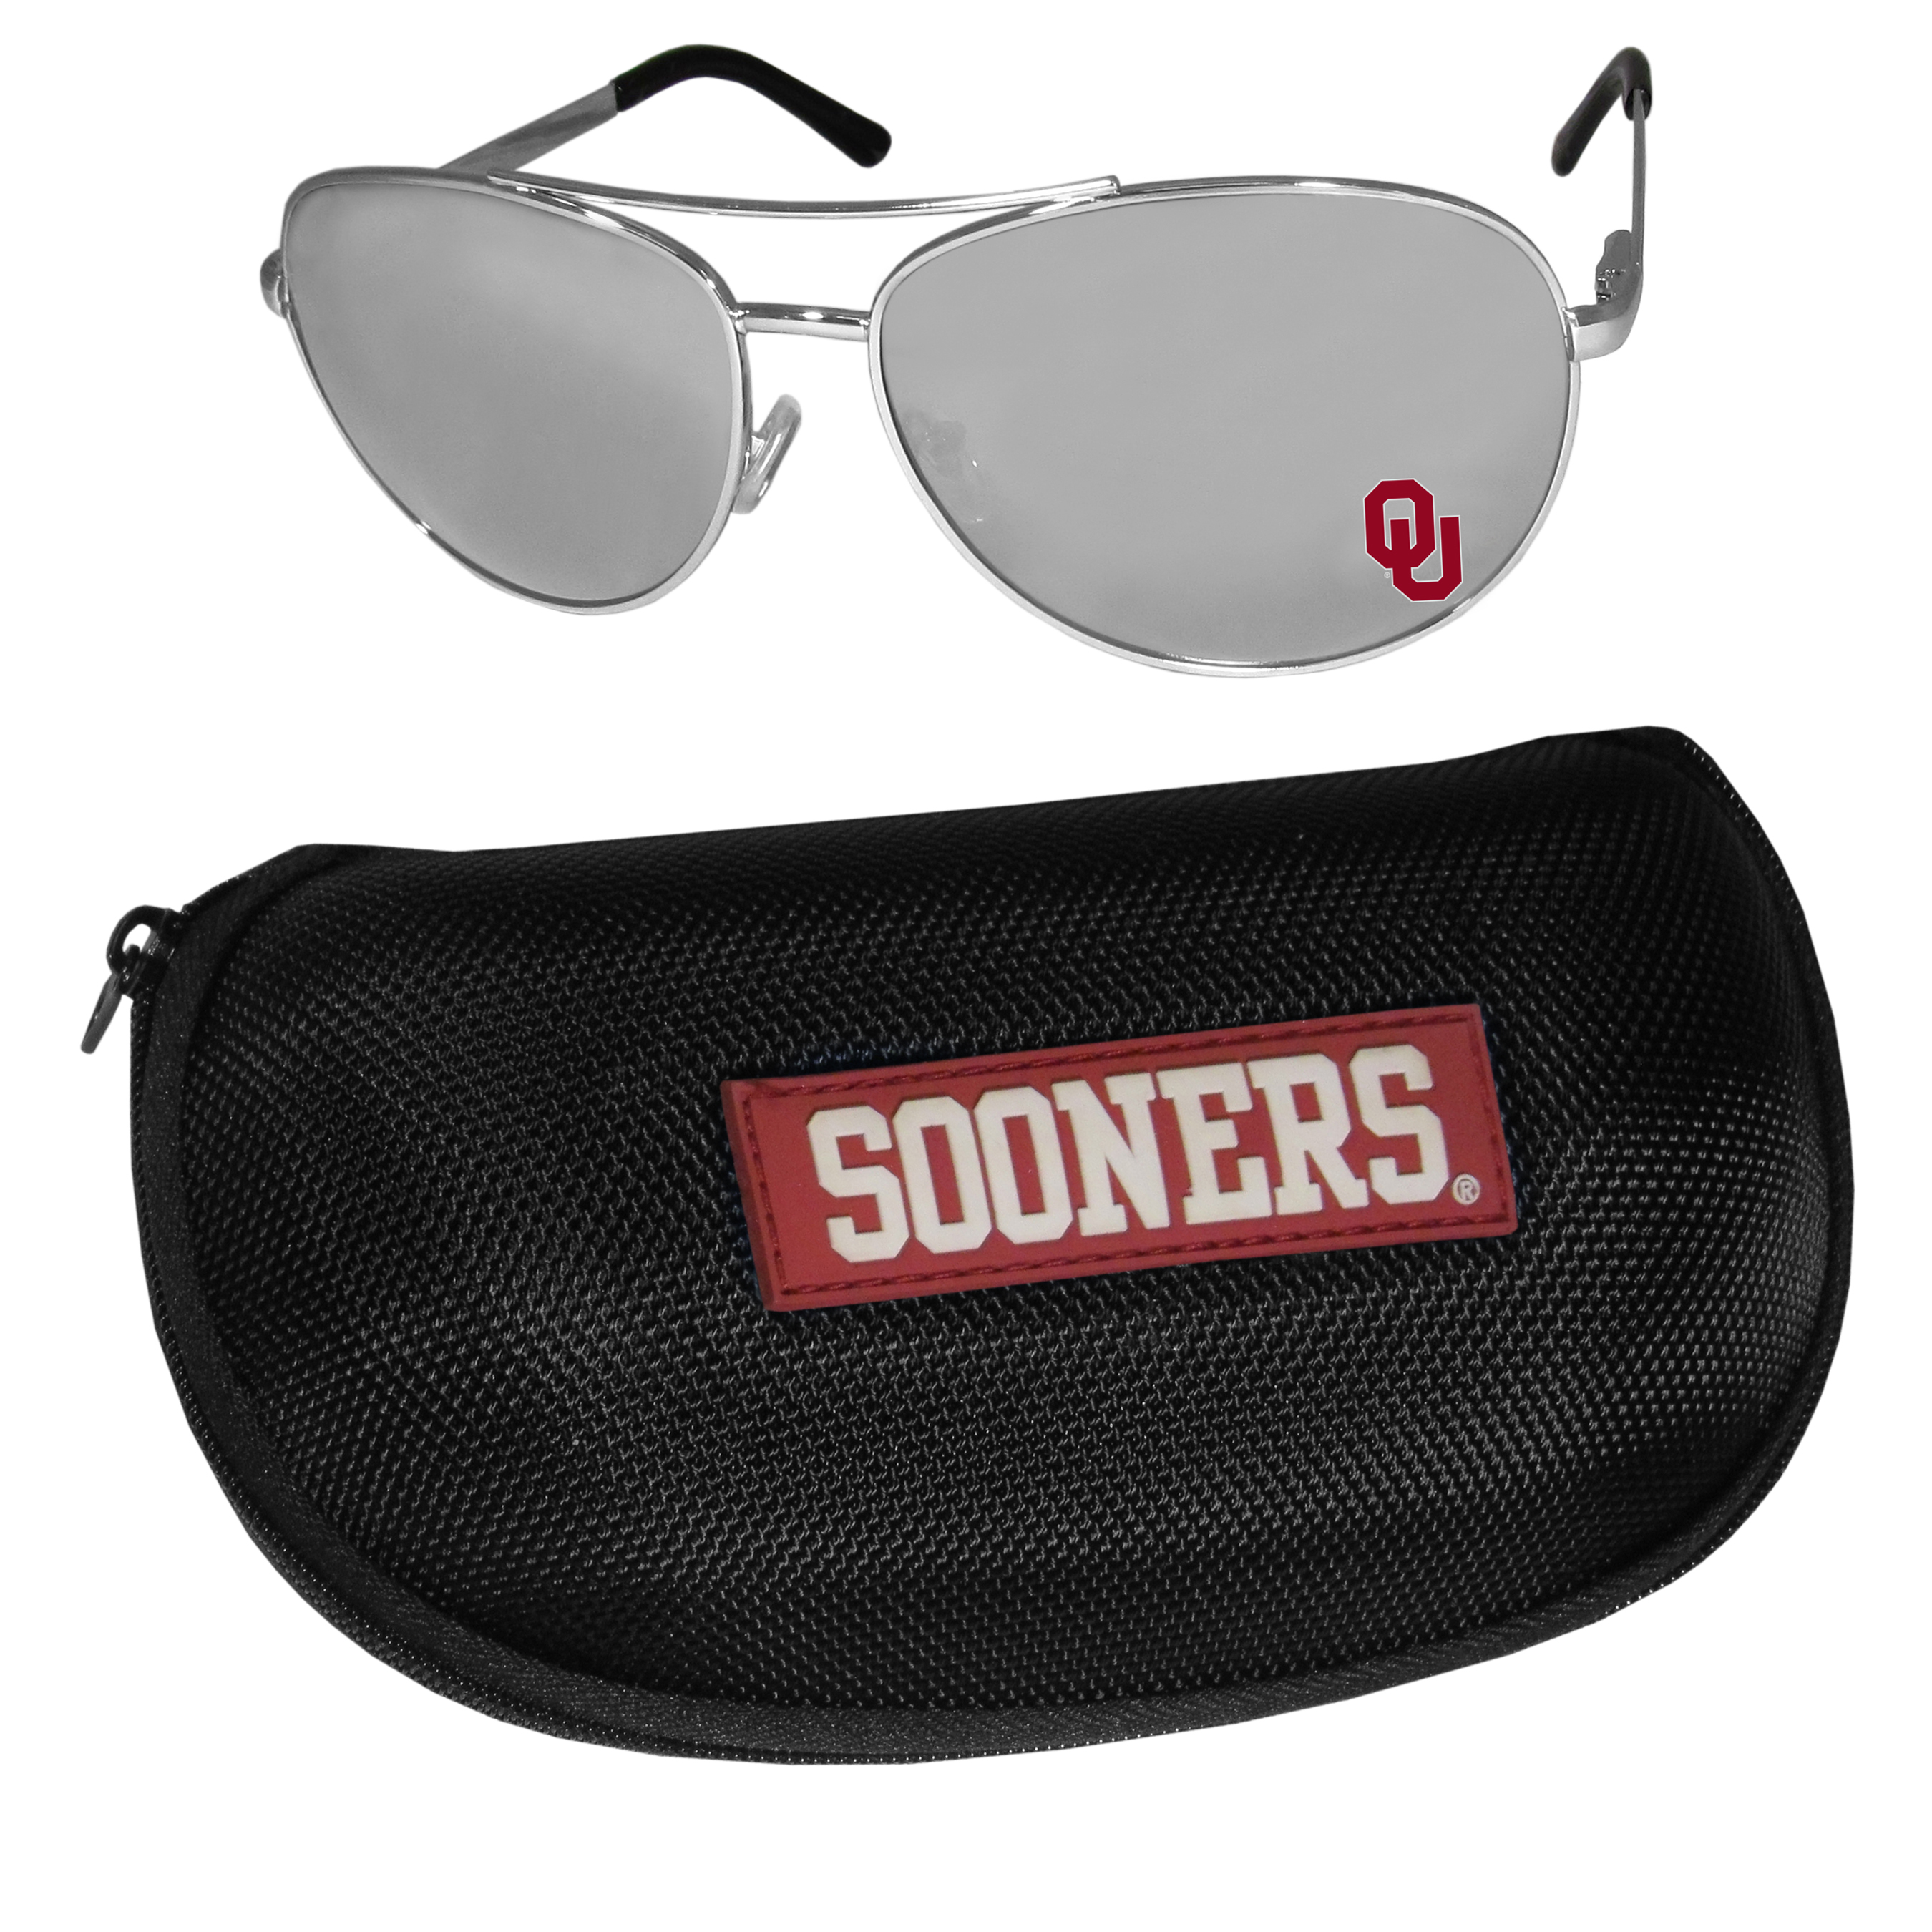 Oklahoma Sooners Aviator Sunglasses and Zippered Carrying Case - Aviator sunglasses are truly an iconic retro fashion statement that never goes out-of-style. Our Oklahoma Sooners  aviator sunglasses pair this classic look with your love of the game. The iridium coated lenses reduce glare while driving, boating, golfing and their 100% UVA/UVB rating provides you with the maximum UV protection for all your outdoor activities. A millennial favorite, these affordable designer frames are the perfect eyewear accessory for a sports fan that is looking for high-quality at an affordable price. The durable, flex hinged frames are tough enough for hiking and camping or if you prefer sun bathing by the pool or on the beach these shades will really stand the test of time. The sunglasses come with a hard shell zippered case which has a large team logo on the lid that will make even the most die-hard fan proud!